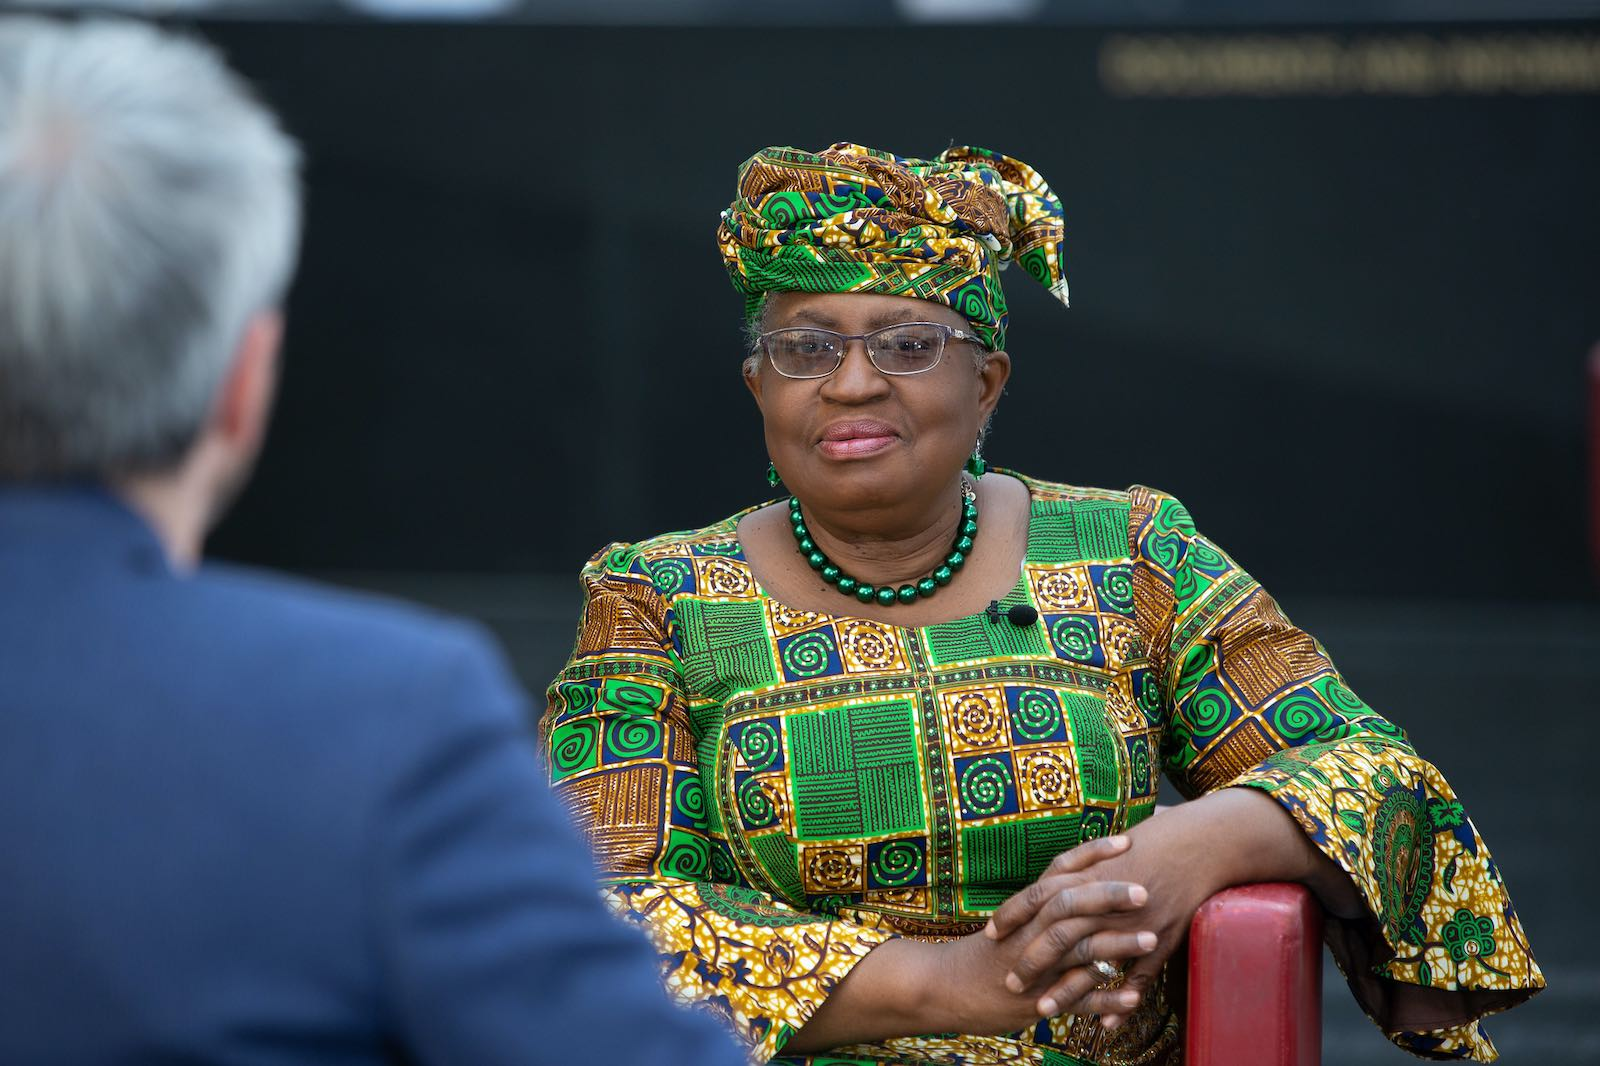 Ngozi Okonjo-Iweala during a media interview after taking over as Director General of the World Trade Organisation (Bryan Lehmann/WTO/Flickr)